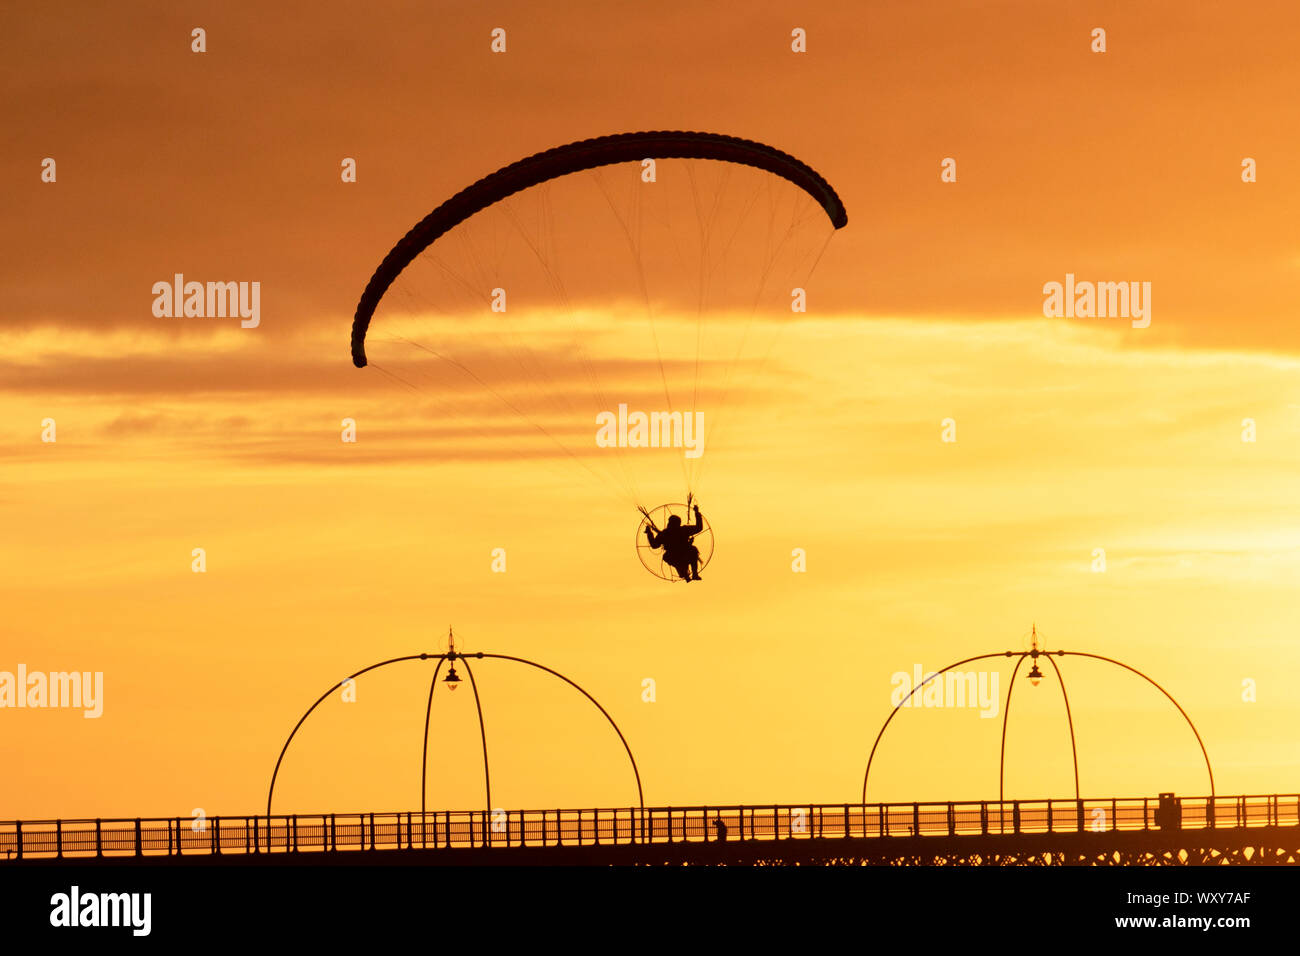 Southport. Merseyside. UK Weather. 18th Sept, 2019. UK Weather; Sunny colourful end to the day as powered hand glider silhouetted in the evening sun, takes a powered flight in light winds as the sun sets in Southport. Paramotor flying machines & Stunt flying as the sun sets; a hand glider silhouette against orange clouds, enjoying flying over the Irish Sea coast. Credit:MWI/AlamyLiveNews. Stock Photo